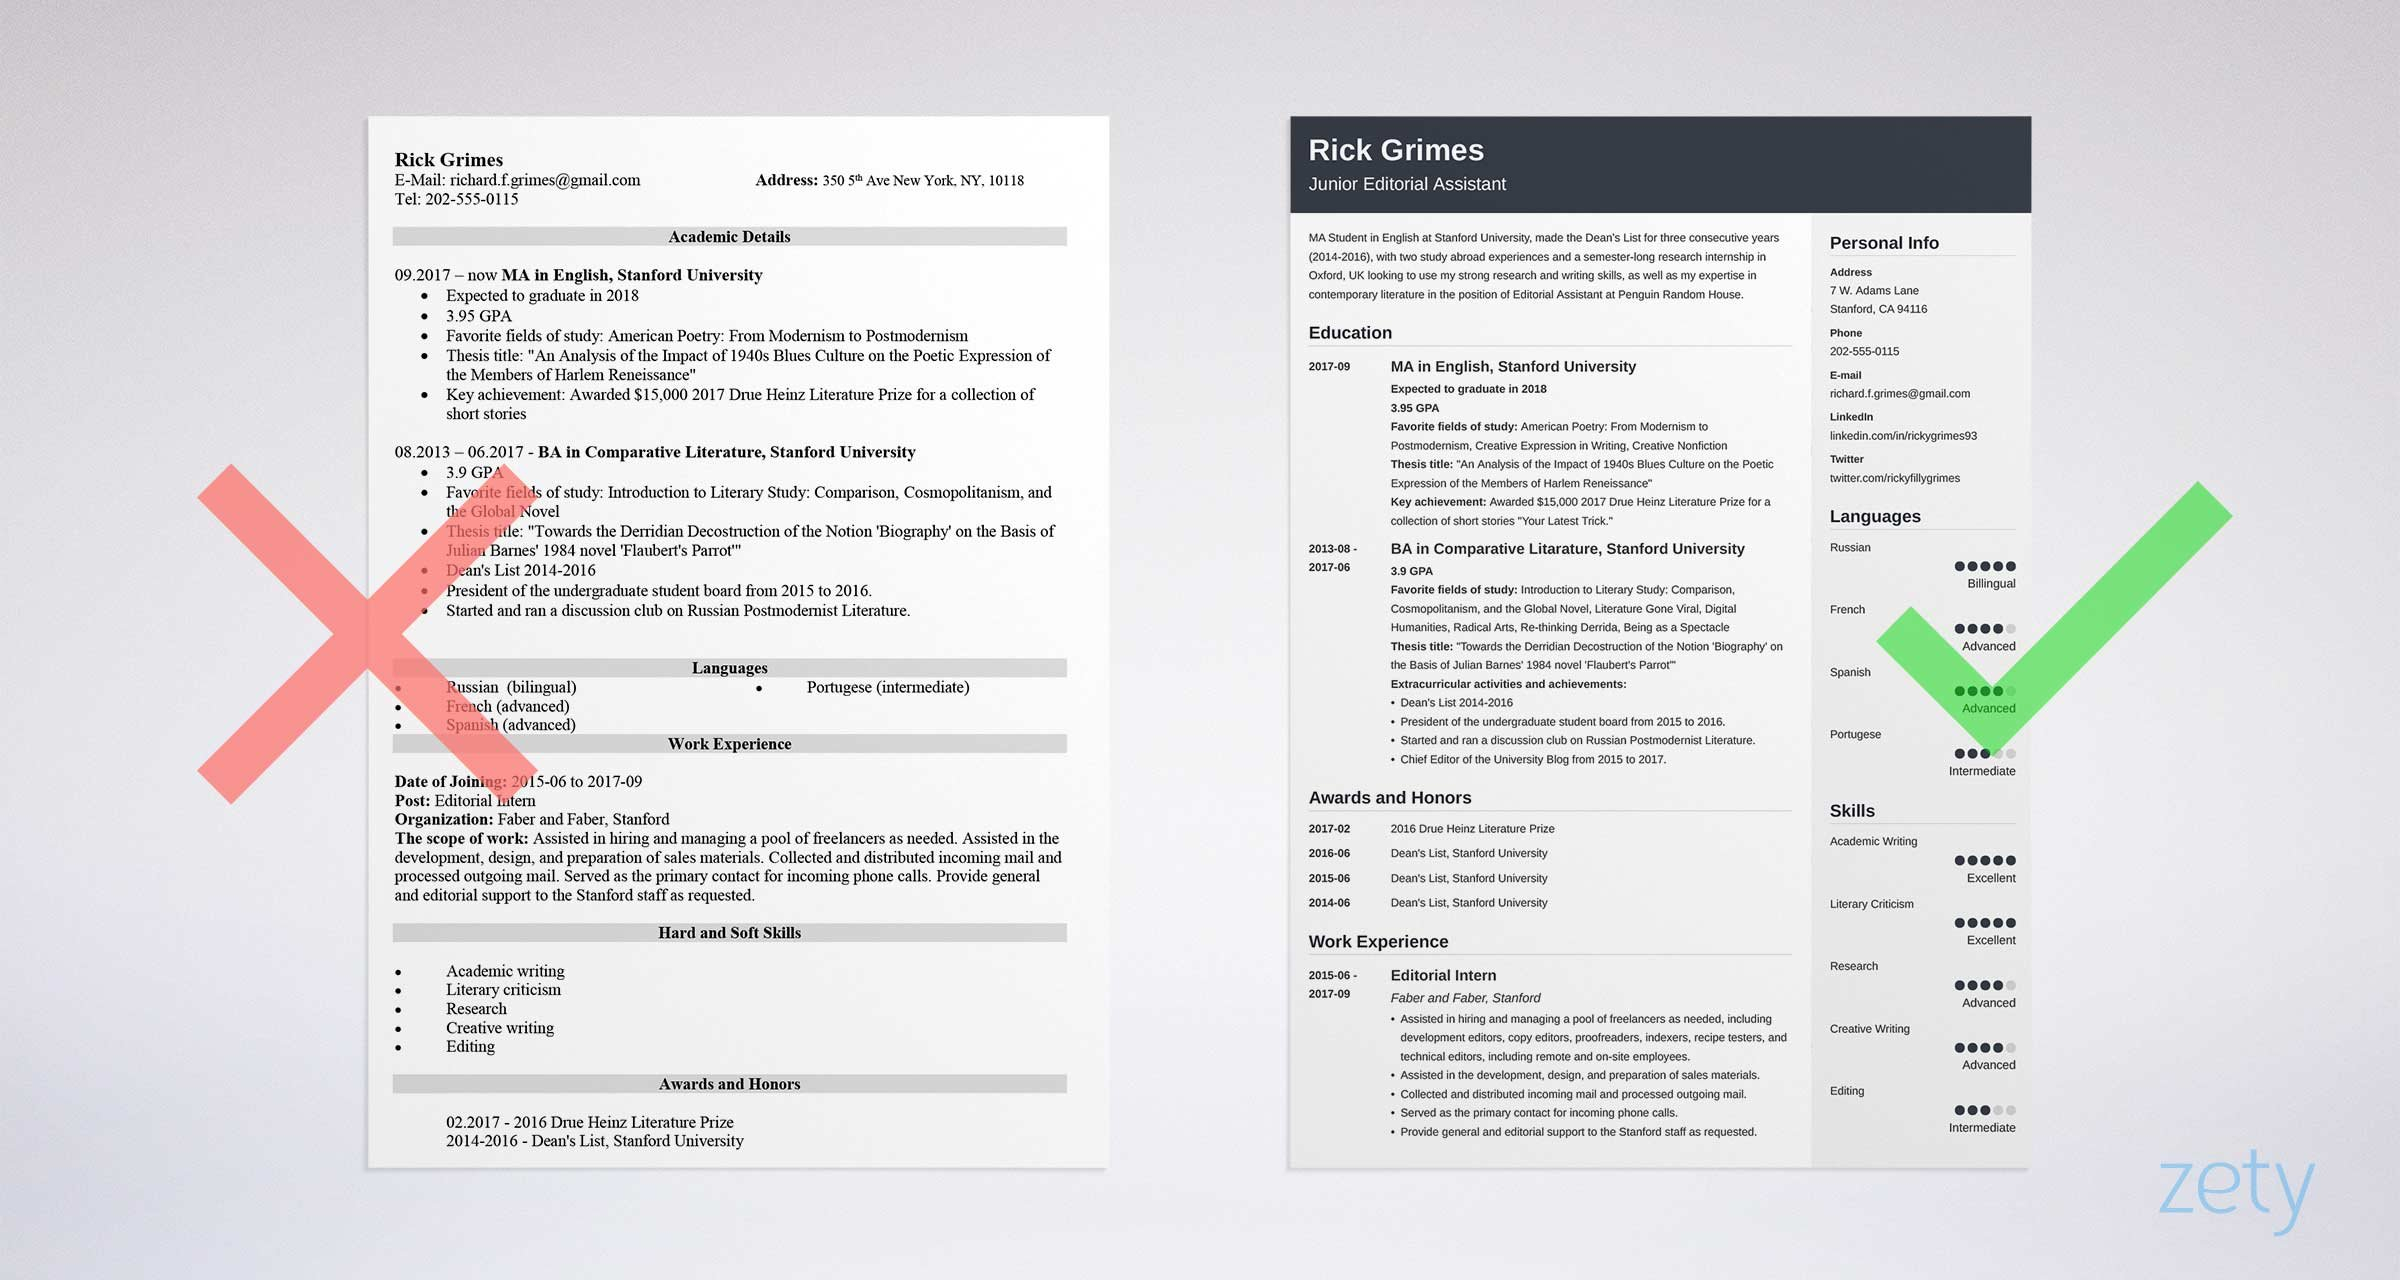 Product Manager Resume Template - Entry Level Resume Sample and Plete Guide [ 20 Examples]